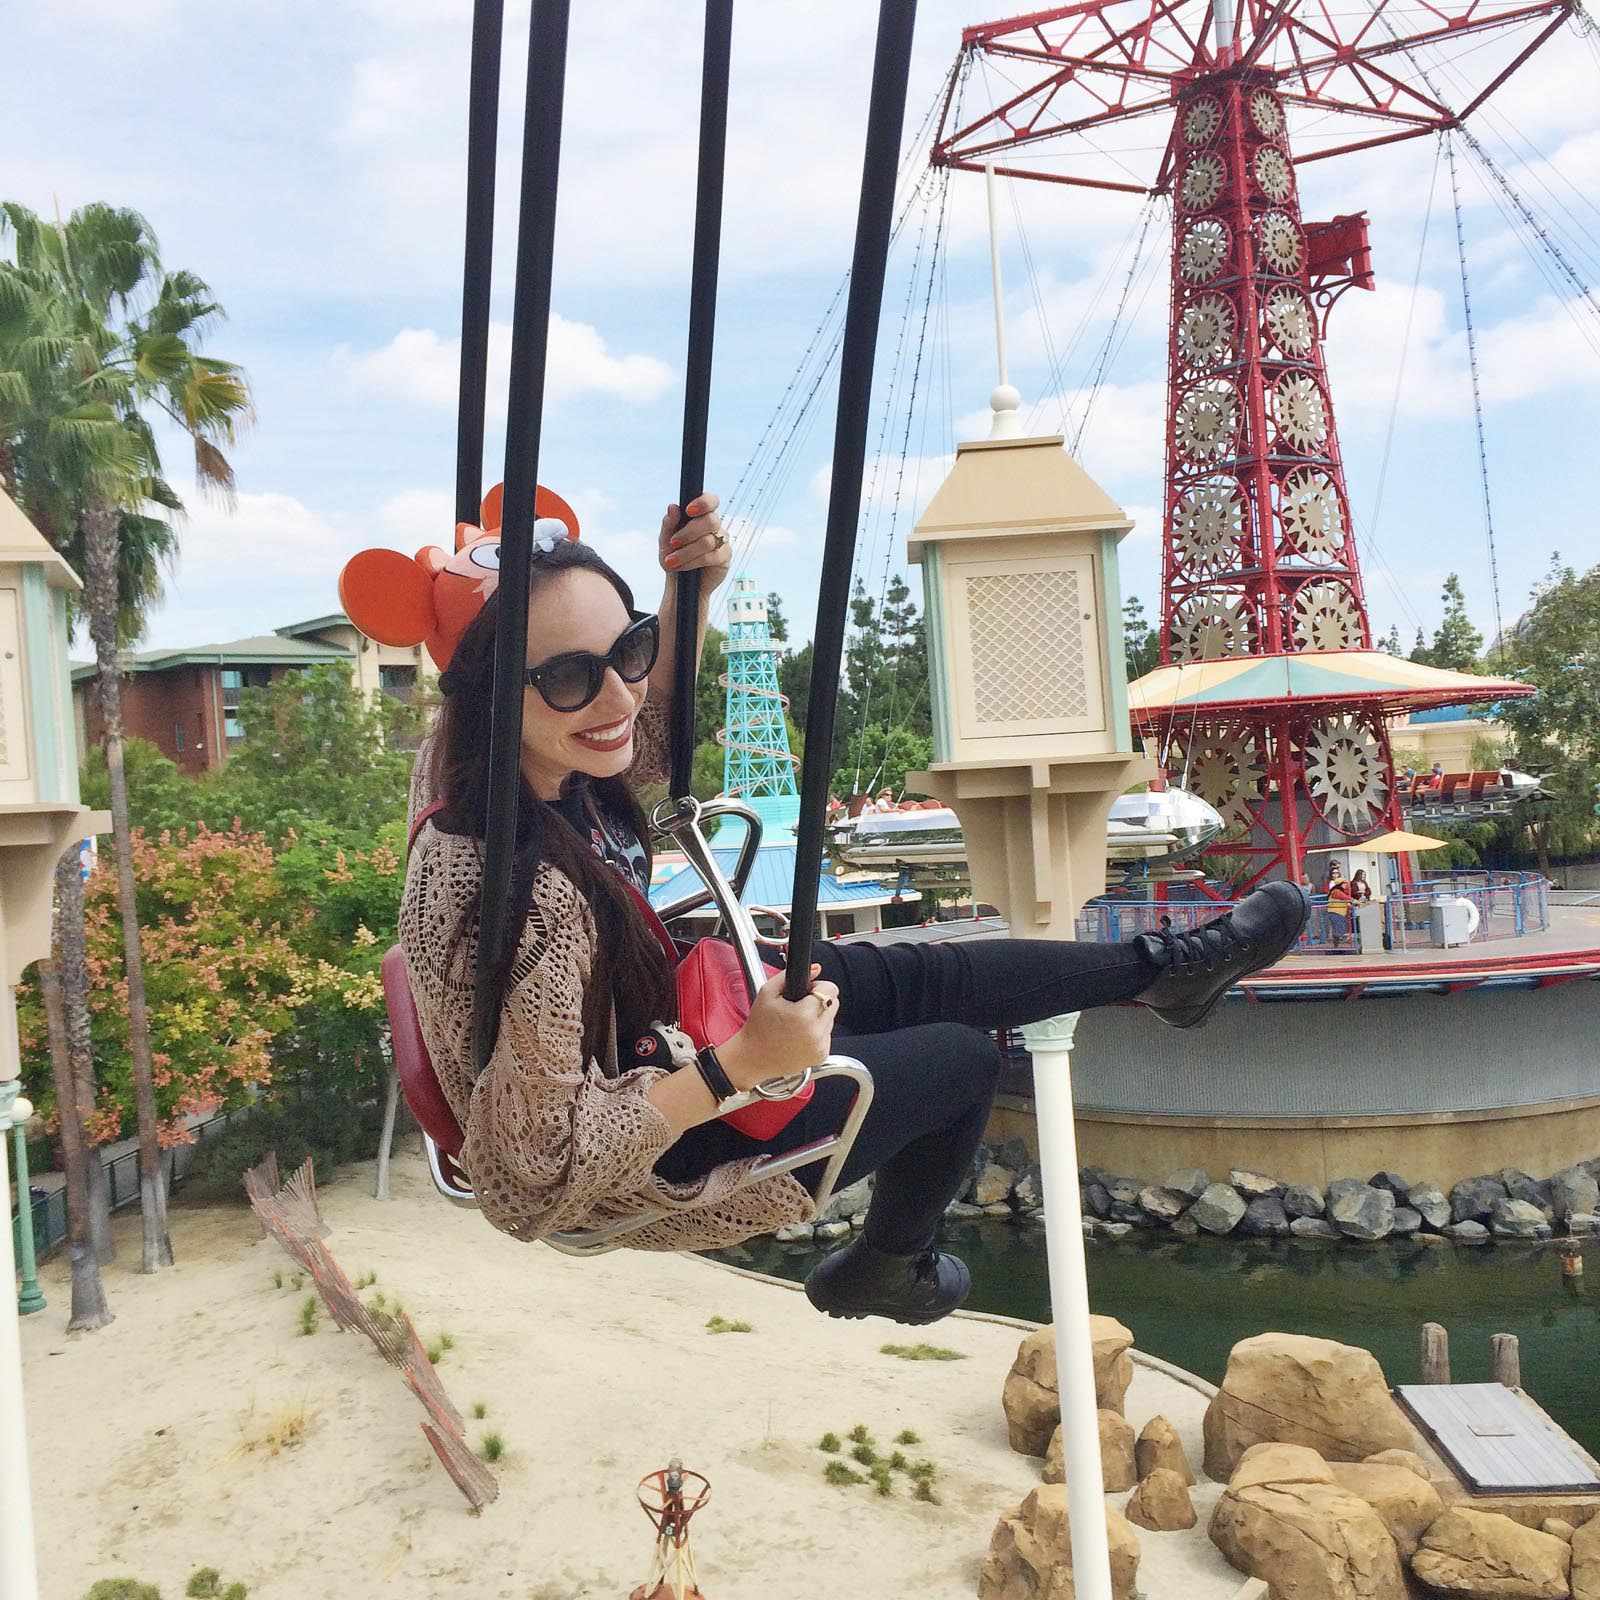 Disneyland's California Adventure Symphony Swings